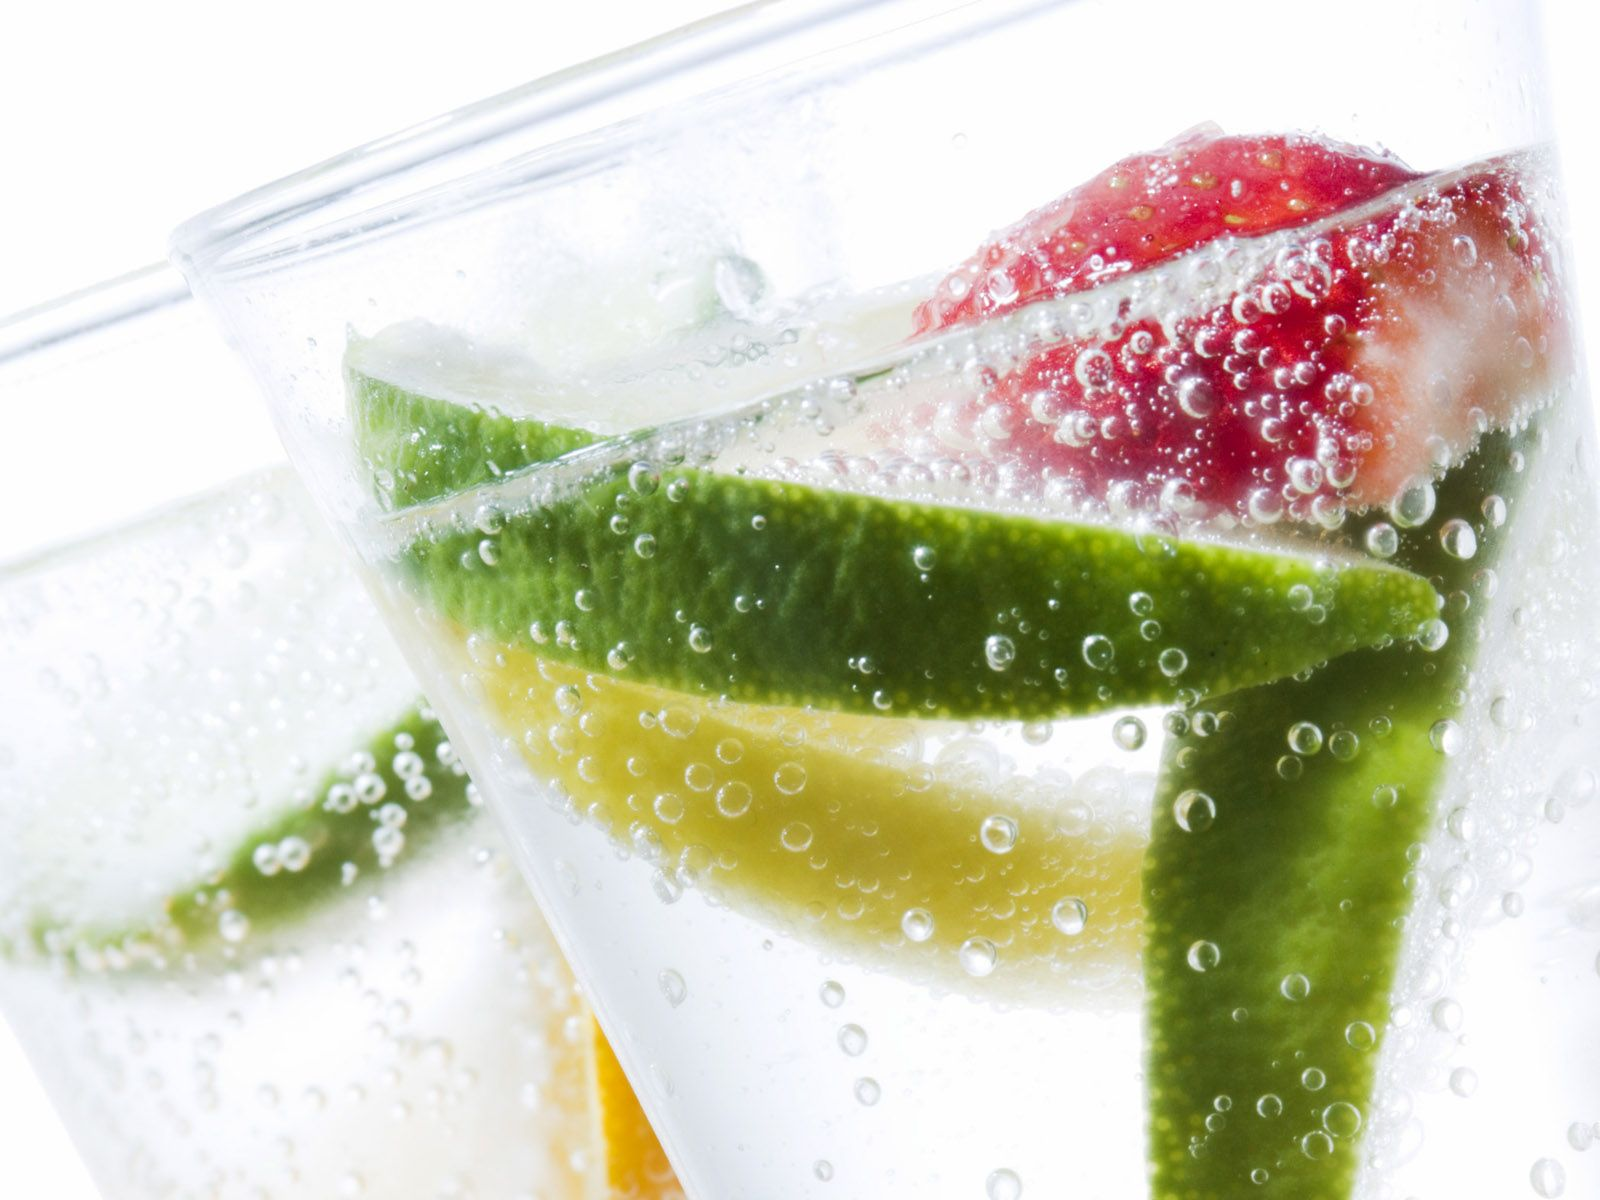 fresh fruits in a glass